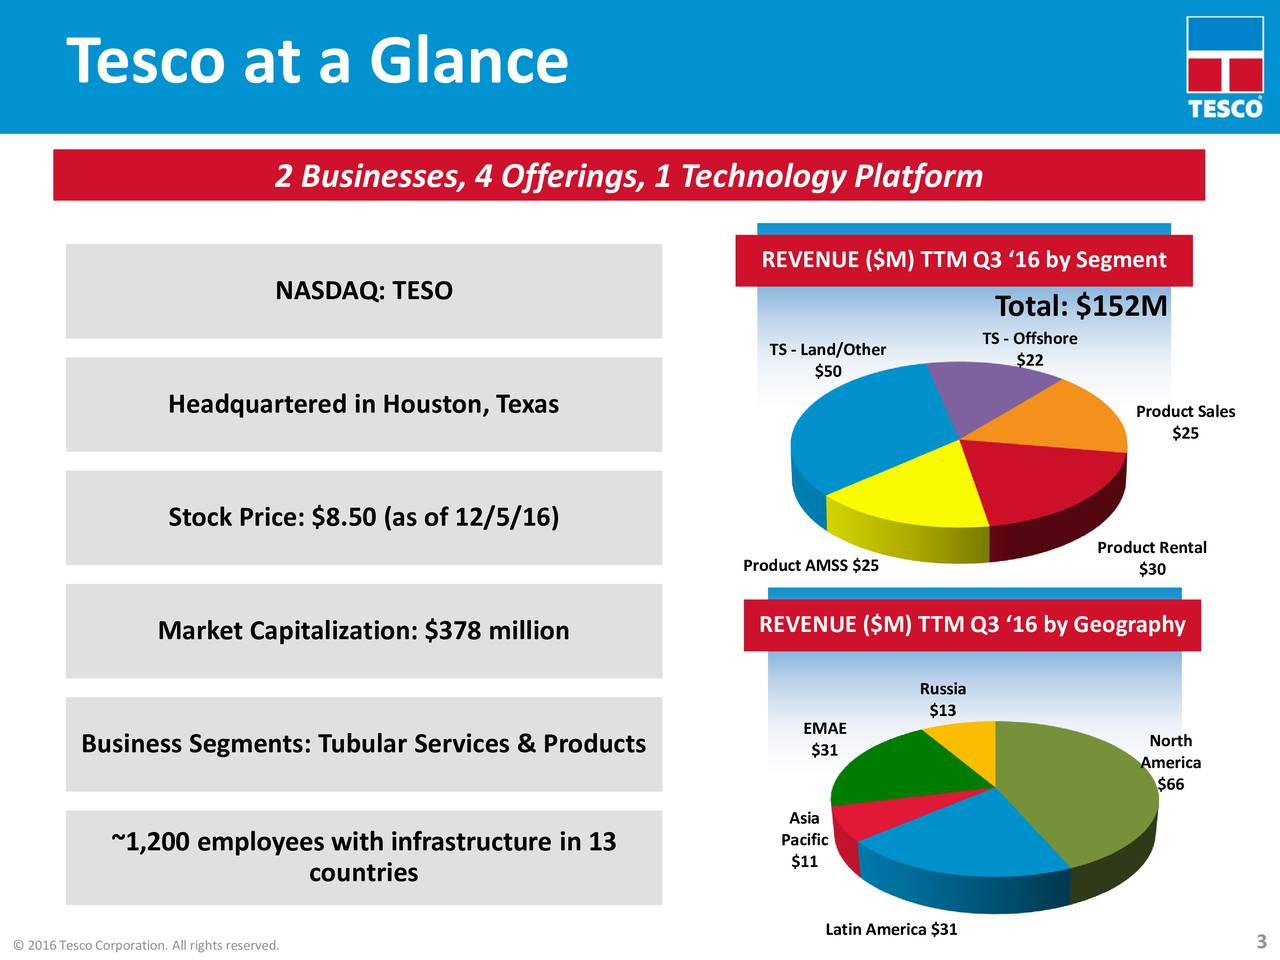 2 Businesses, 4 Offerings, 1 Technology Platform REVENUE ($M) TTM Q3 16 by Segment NASDAQ: TESO Total: $152M TS - Land/Other TS - Offshore $50 $22 Headquartered in Houston, Texas Product Sales $25 Stock Price: $8.50 (as of 12/5/16) Product AMSS $25 Product Rental $30 Market Capitalization: $378 million REVENUE ($M) TTM Q3 16 by Geography Russia EMAE $13 Business Segments: Tubular ServTotal: $183Mcts $31 North America $66 Asia ~1,200 employees with infrastructure in 13 Pacific $11 countries Latin America $31 3